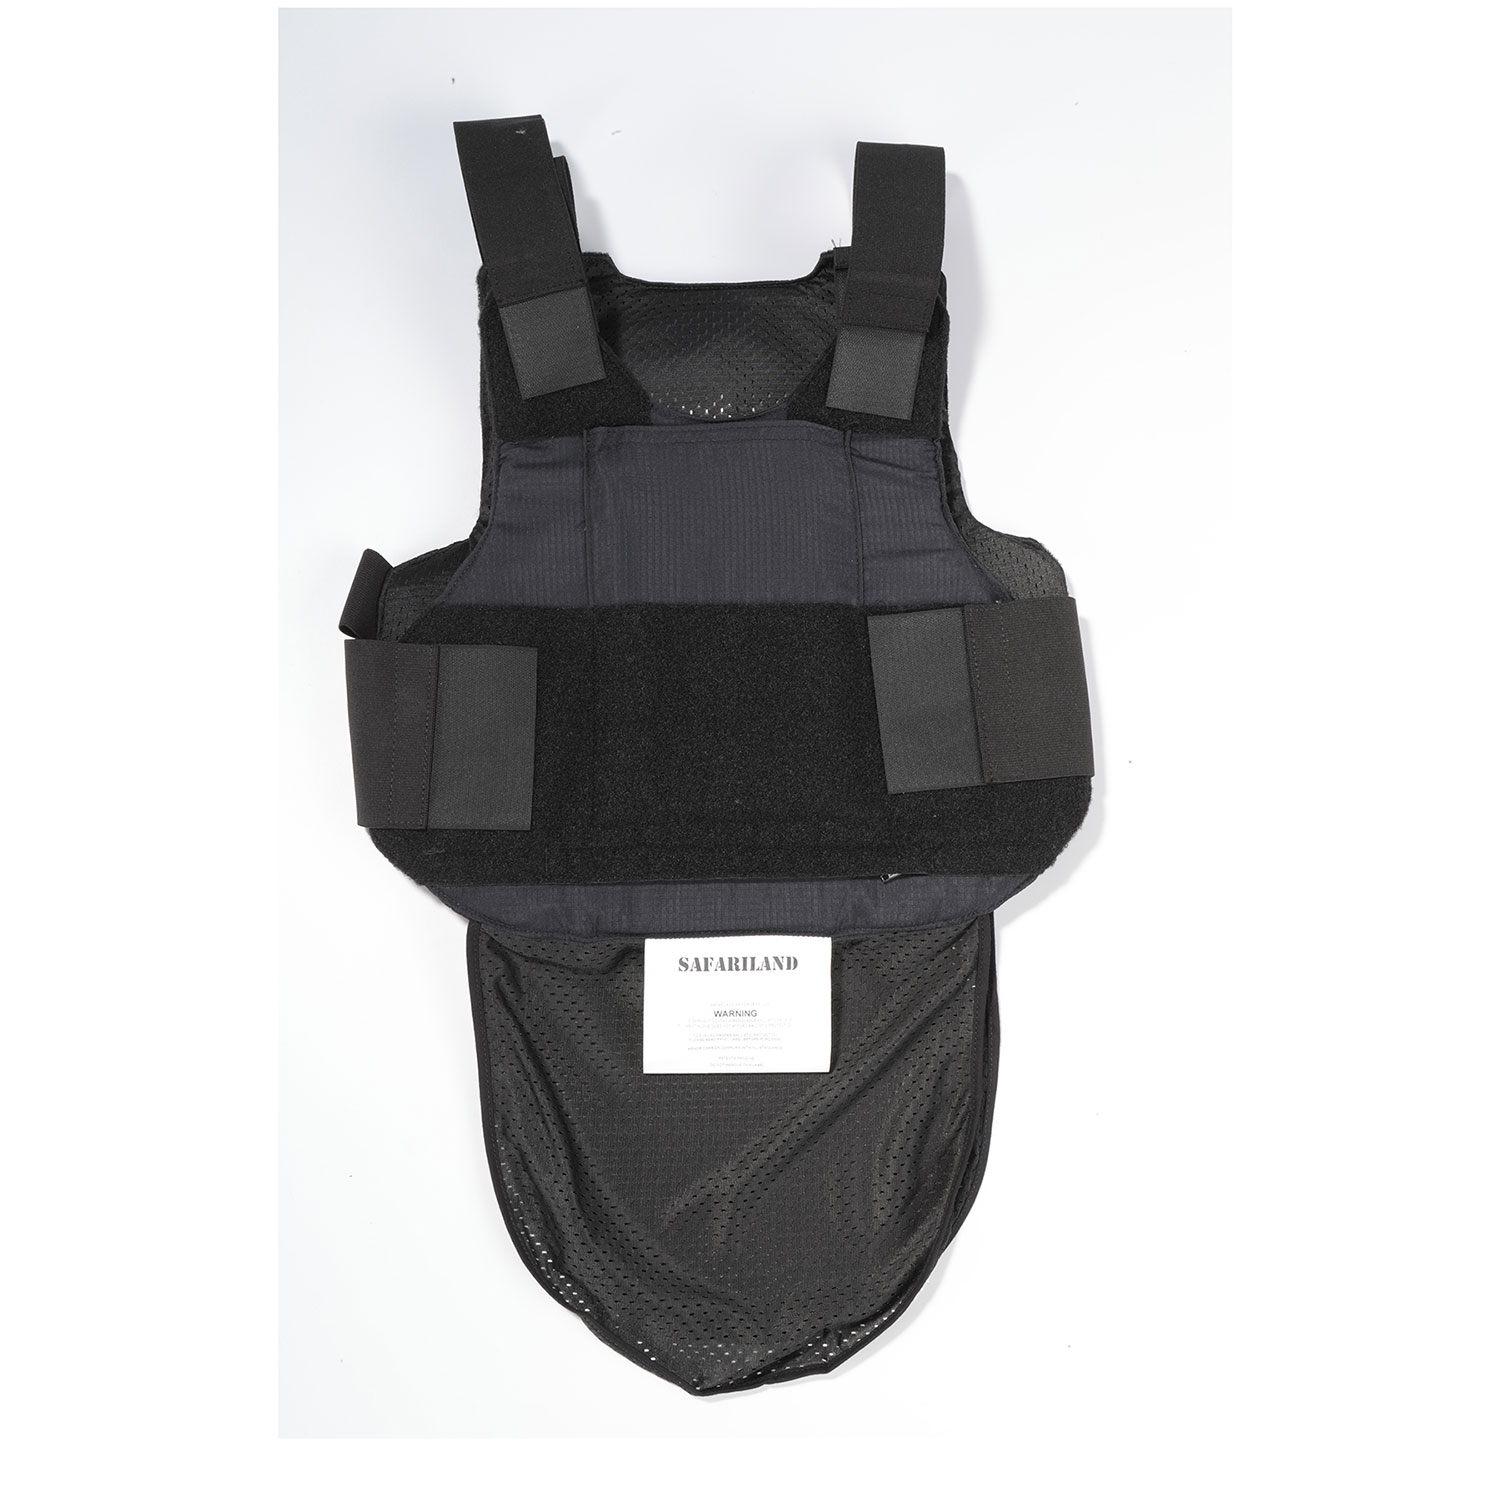 American Body Armor XTreme Threat Level II Ballistic Vest wi